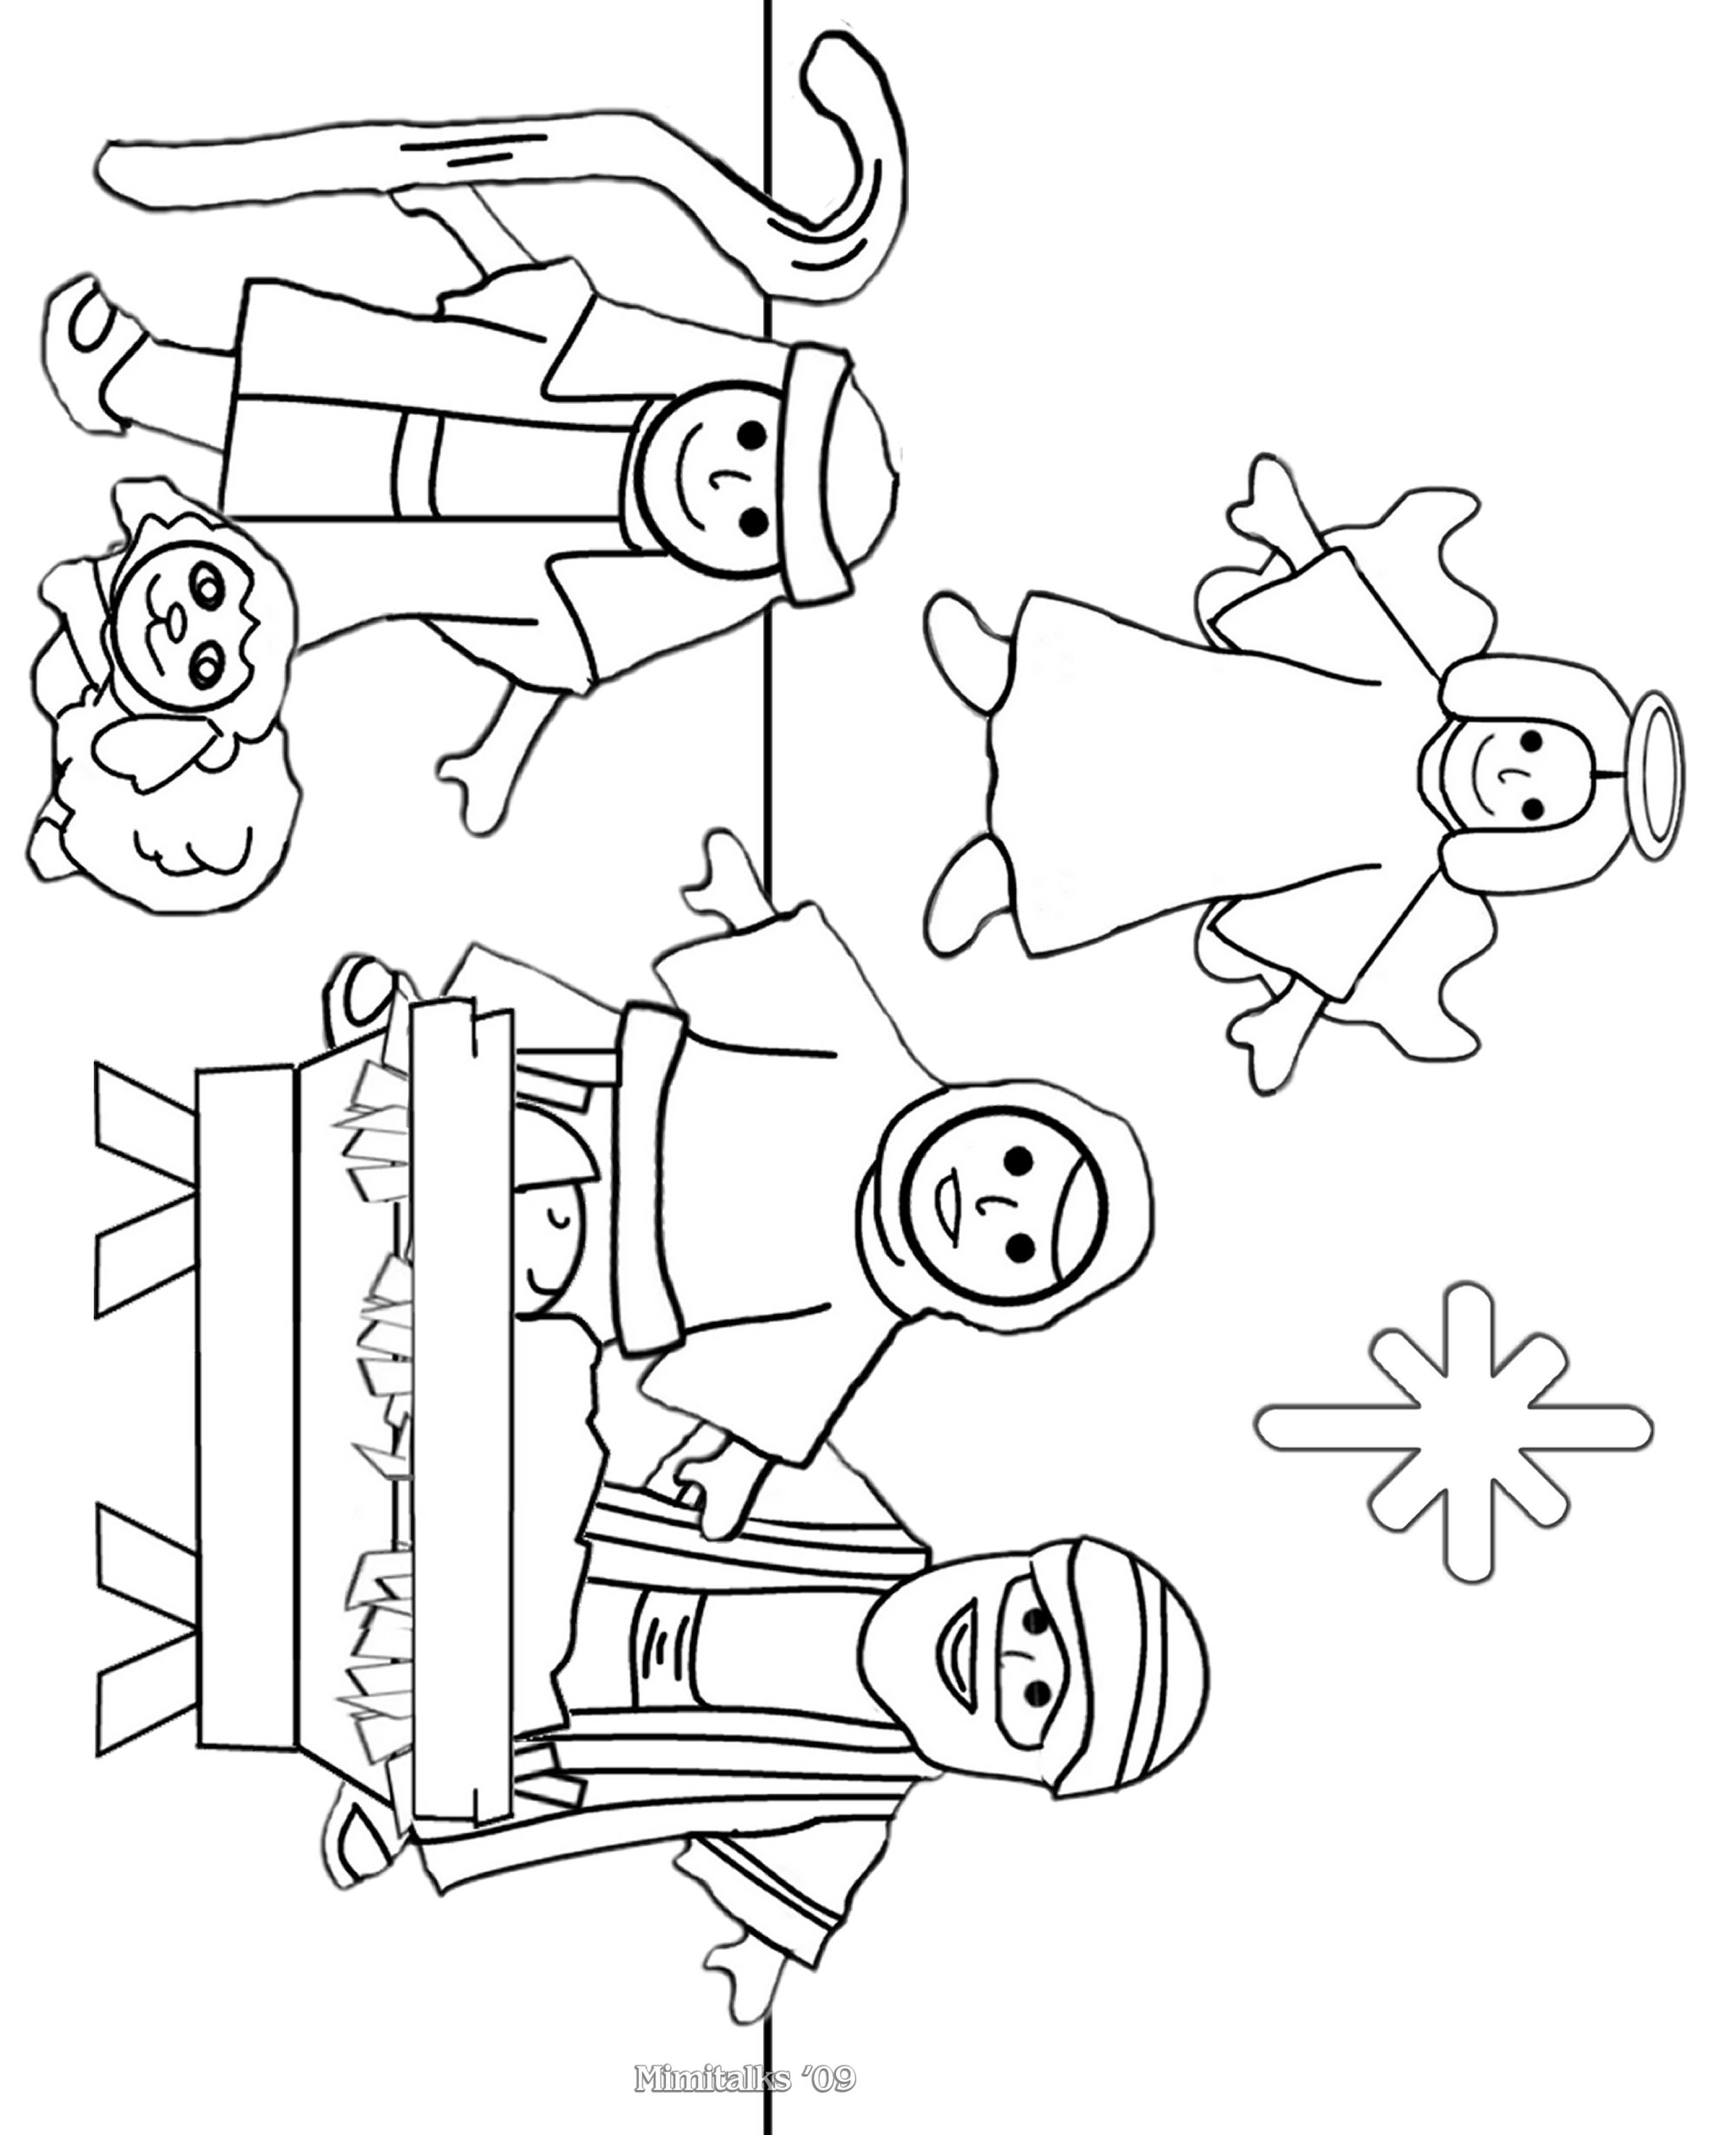 childrens nativity coloring pages - photo#19